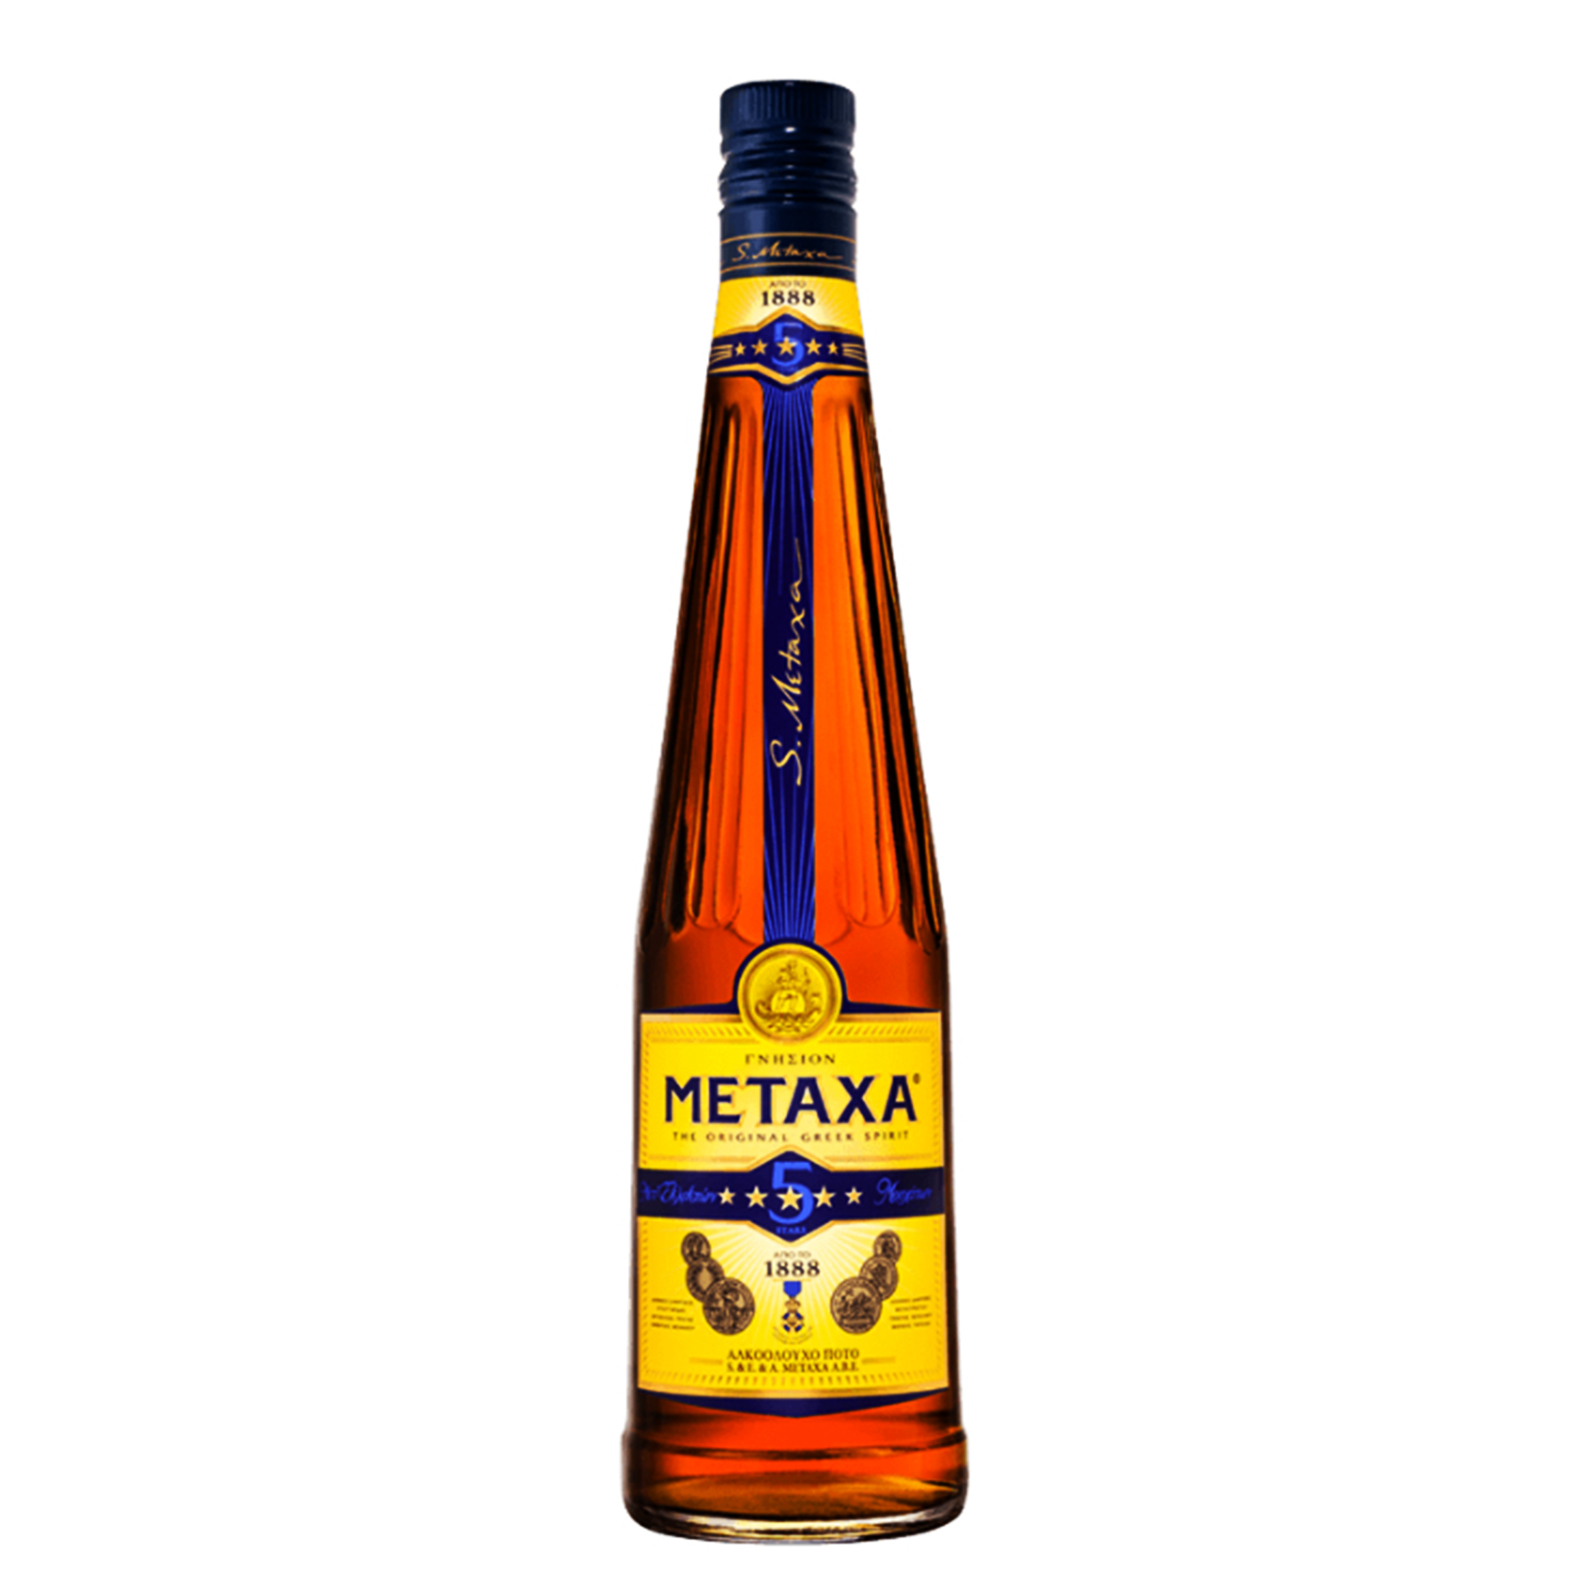 Metaxa 5 Stelle ***** - Brandy - 70cl - S. Metaxa